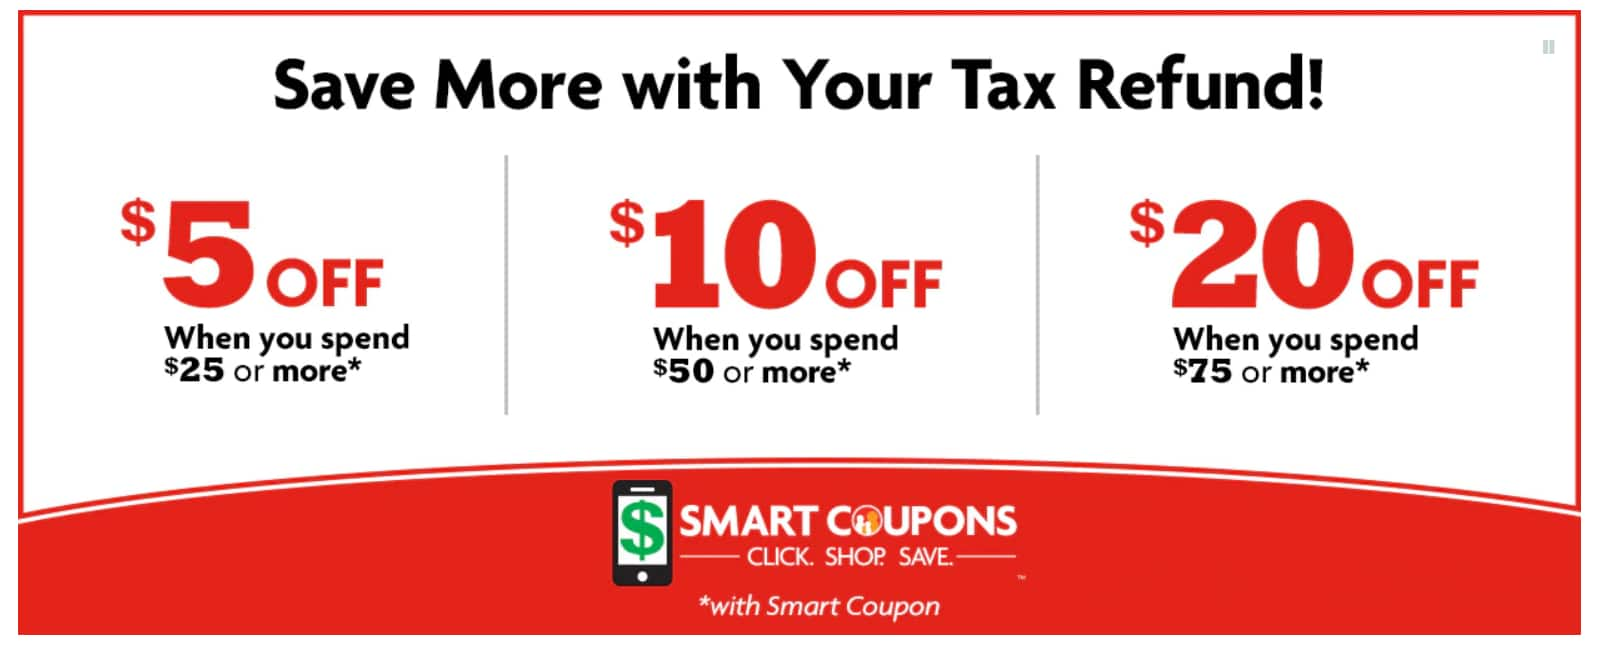 Family Dollar in store digital coupons, $5 off $25, $10 off $50, $20 off $75